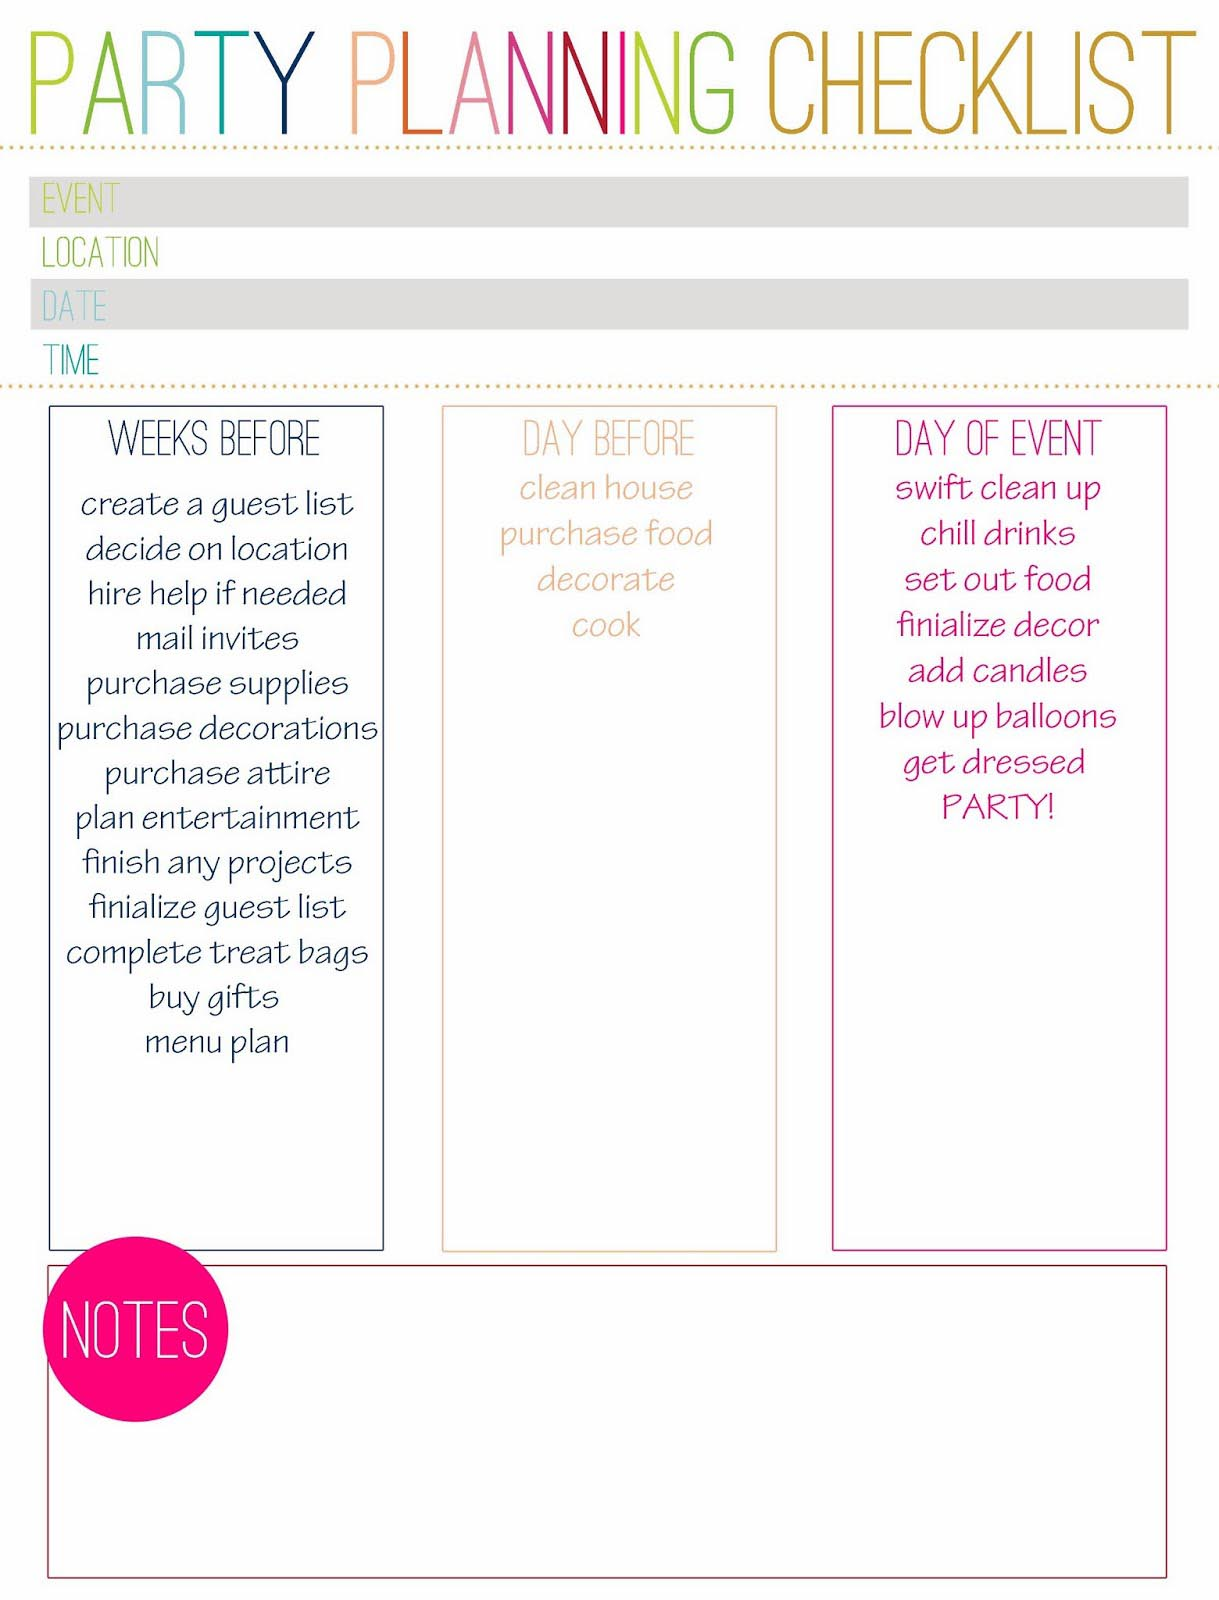 Birthday Party Planning Checklist Template Create A Wanted